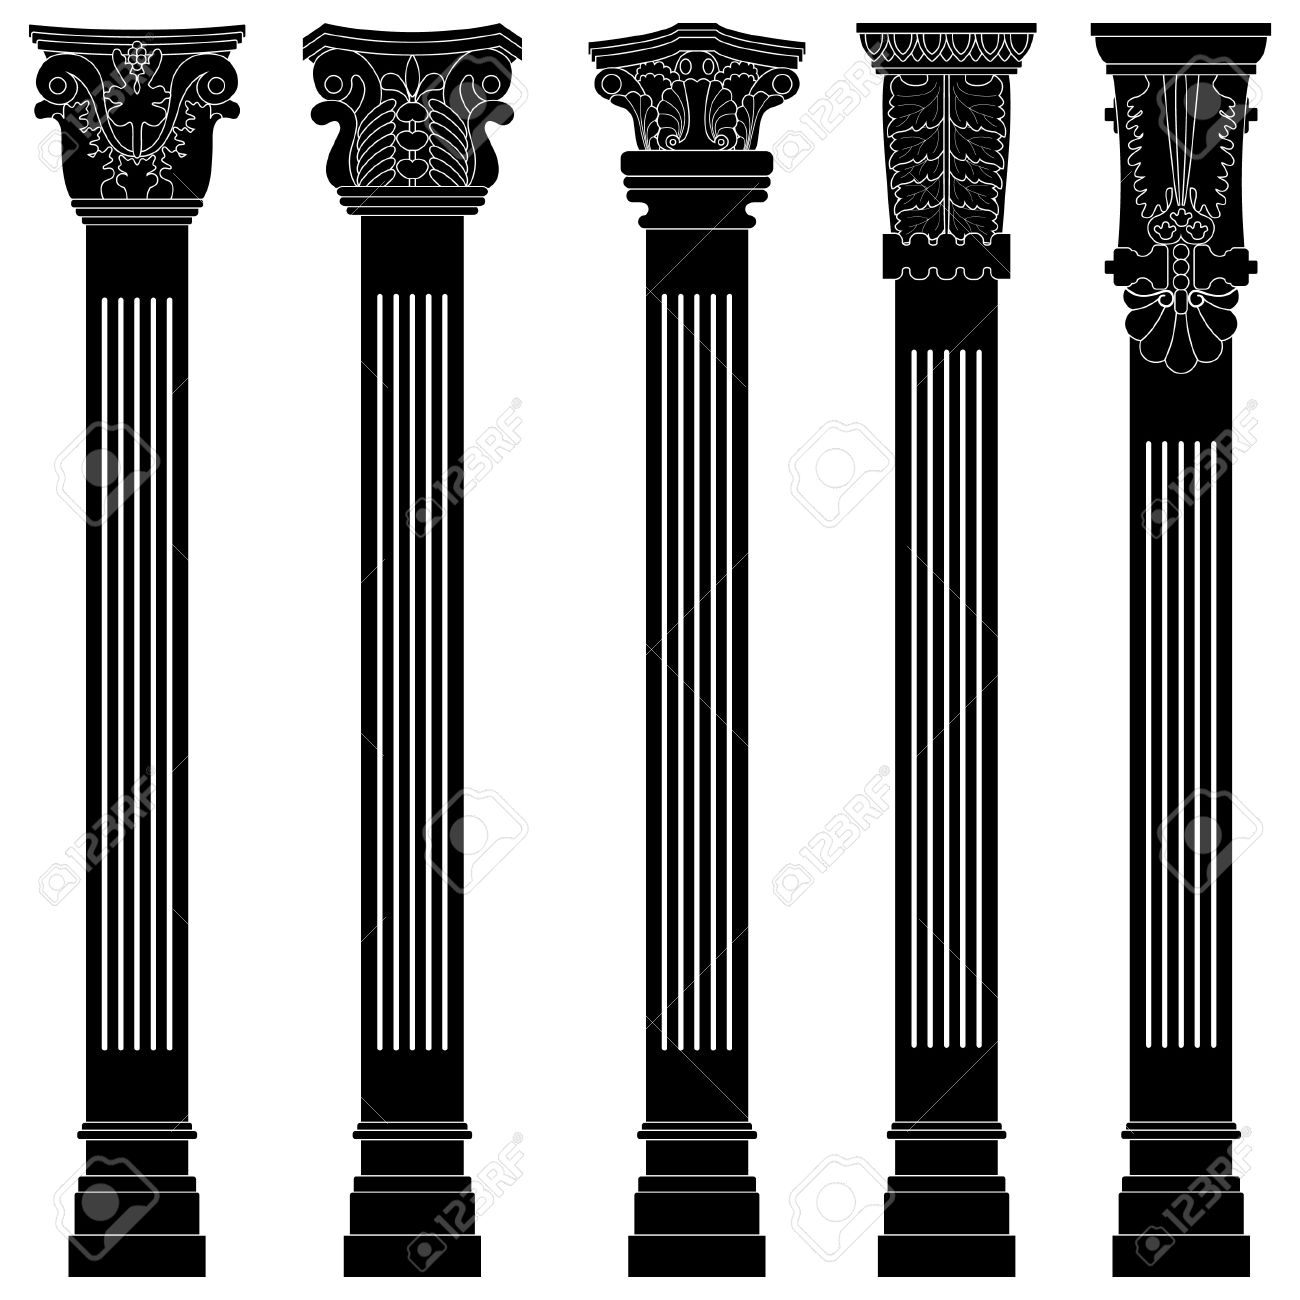 Exellent Greek Architecture Columns Quotations And Carvings Of